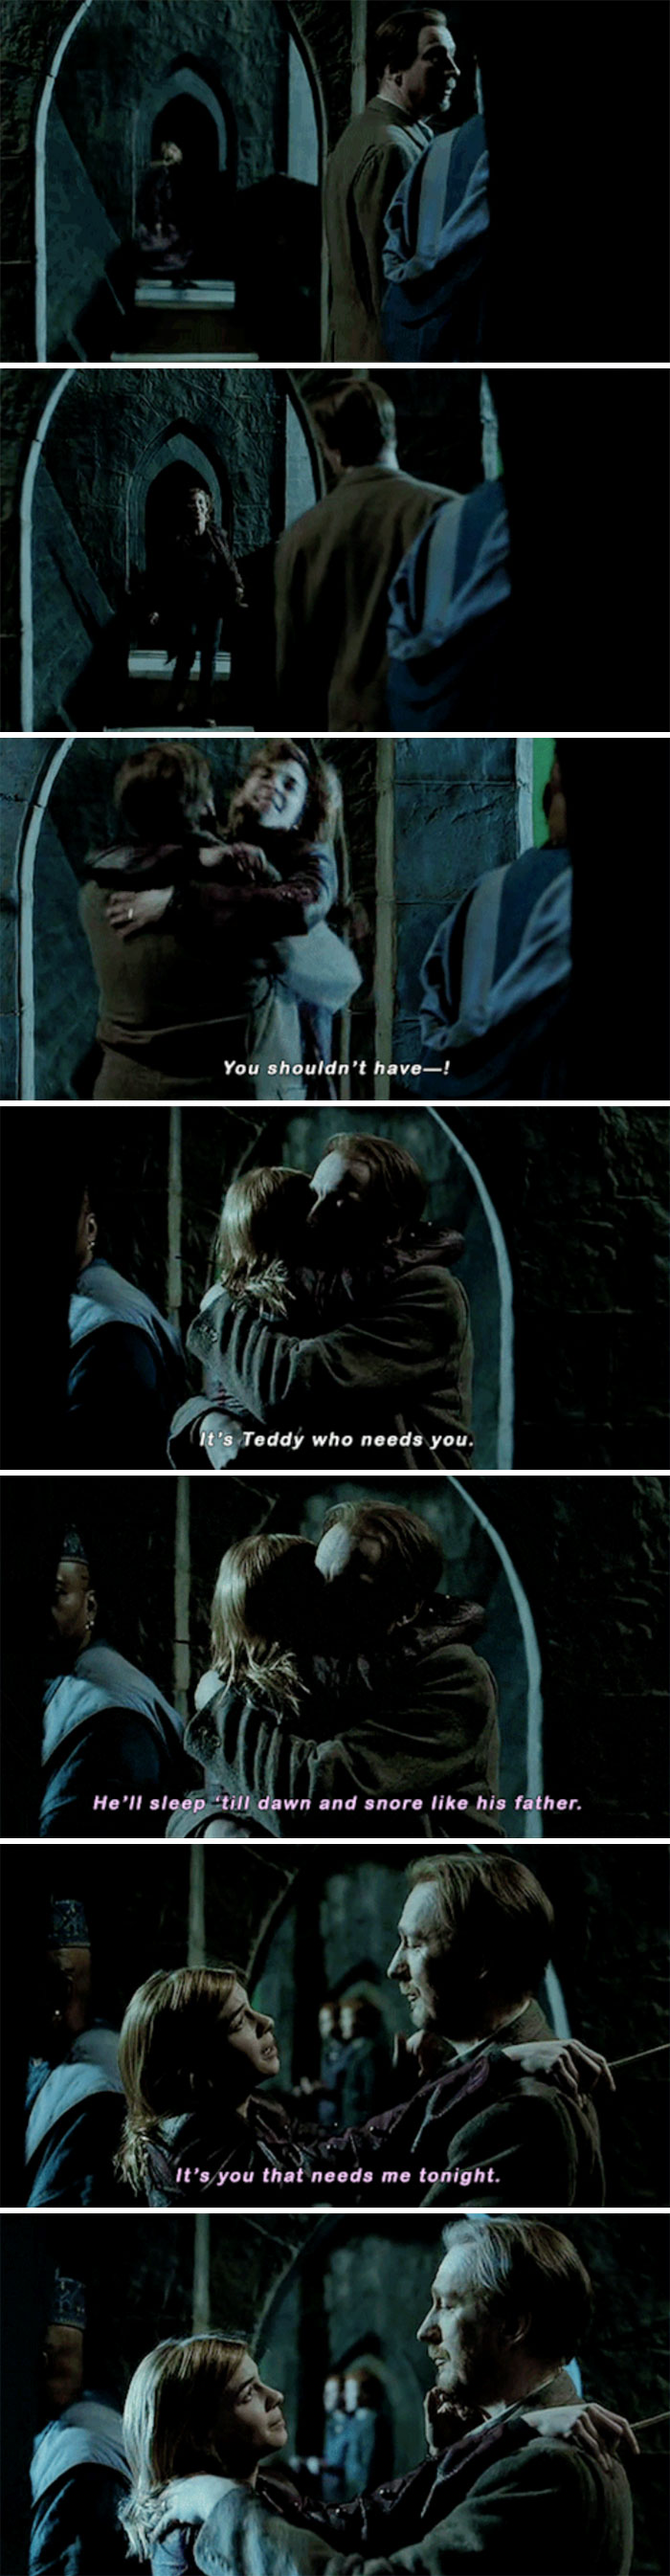 Tonks And Lupin Embrace (Deathly Hallows)